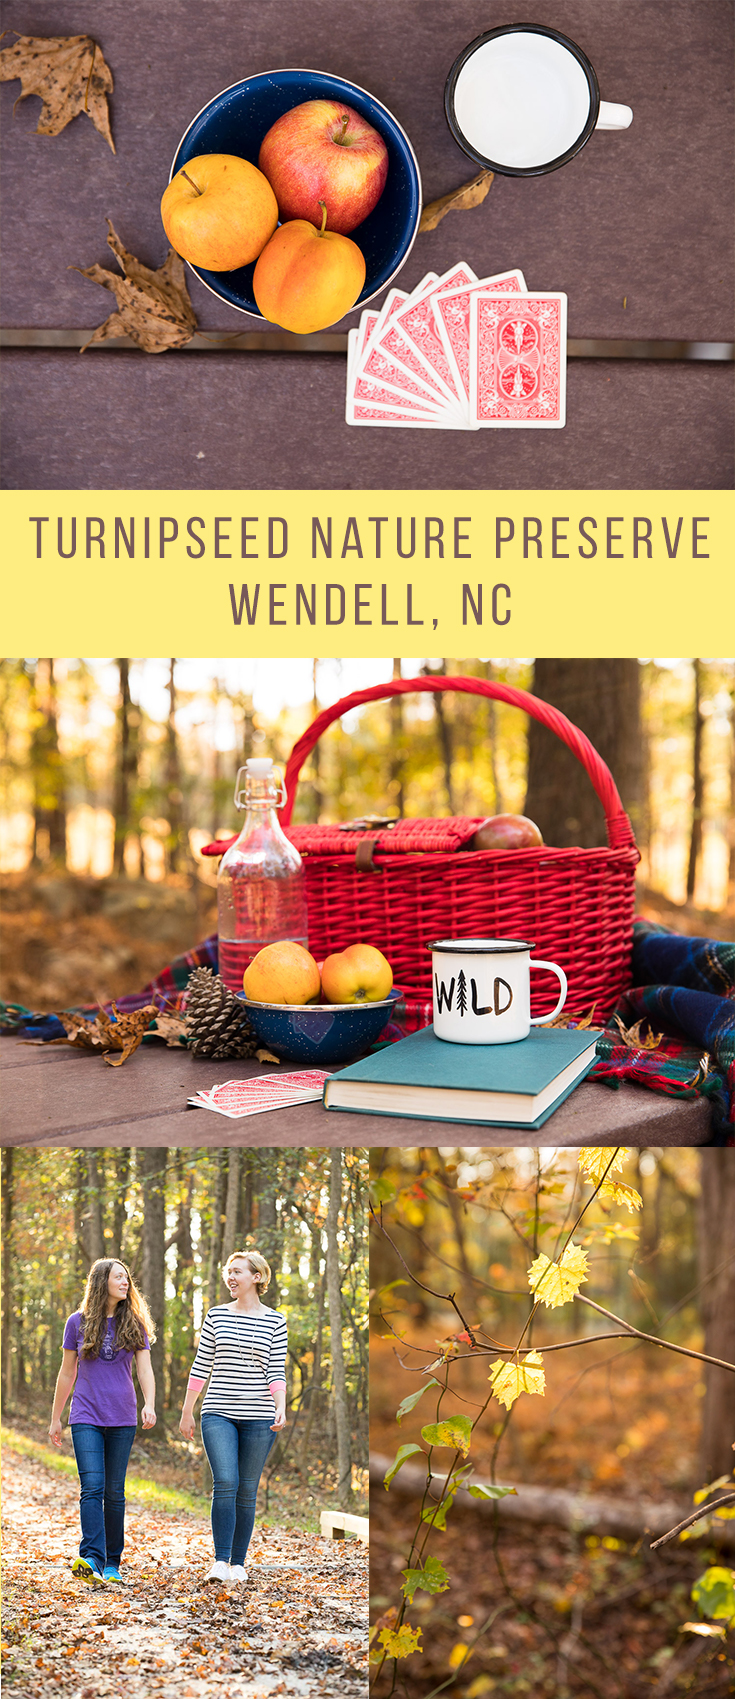 Wake County expanded its park system in 2017 to include Turnipseed Nature Preserve in Wendell, NC. With 265 acres of land preserved, it's an important wetland area and has historical farming significance as well as geological significance as a point where the piedmont and coastal plains of North Carolina meet. The park had its soft opening in fall 2017 and construction is on-going as they build additional trails through the preserve.